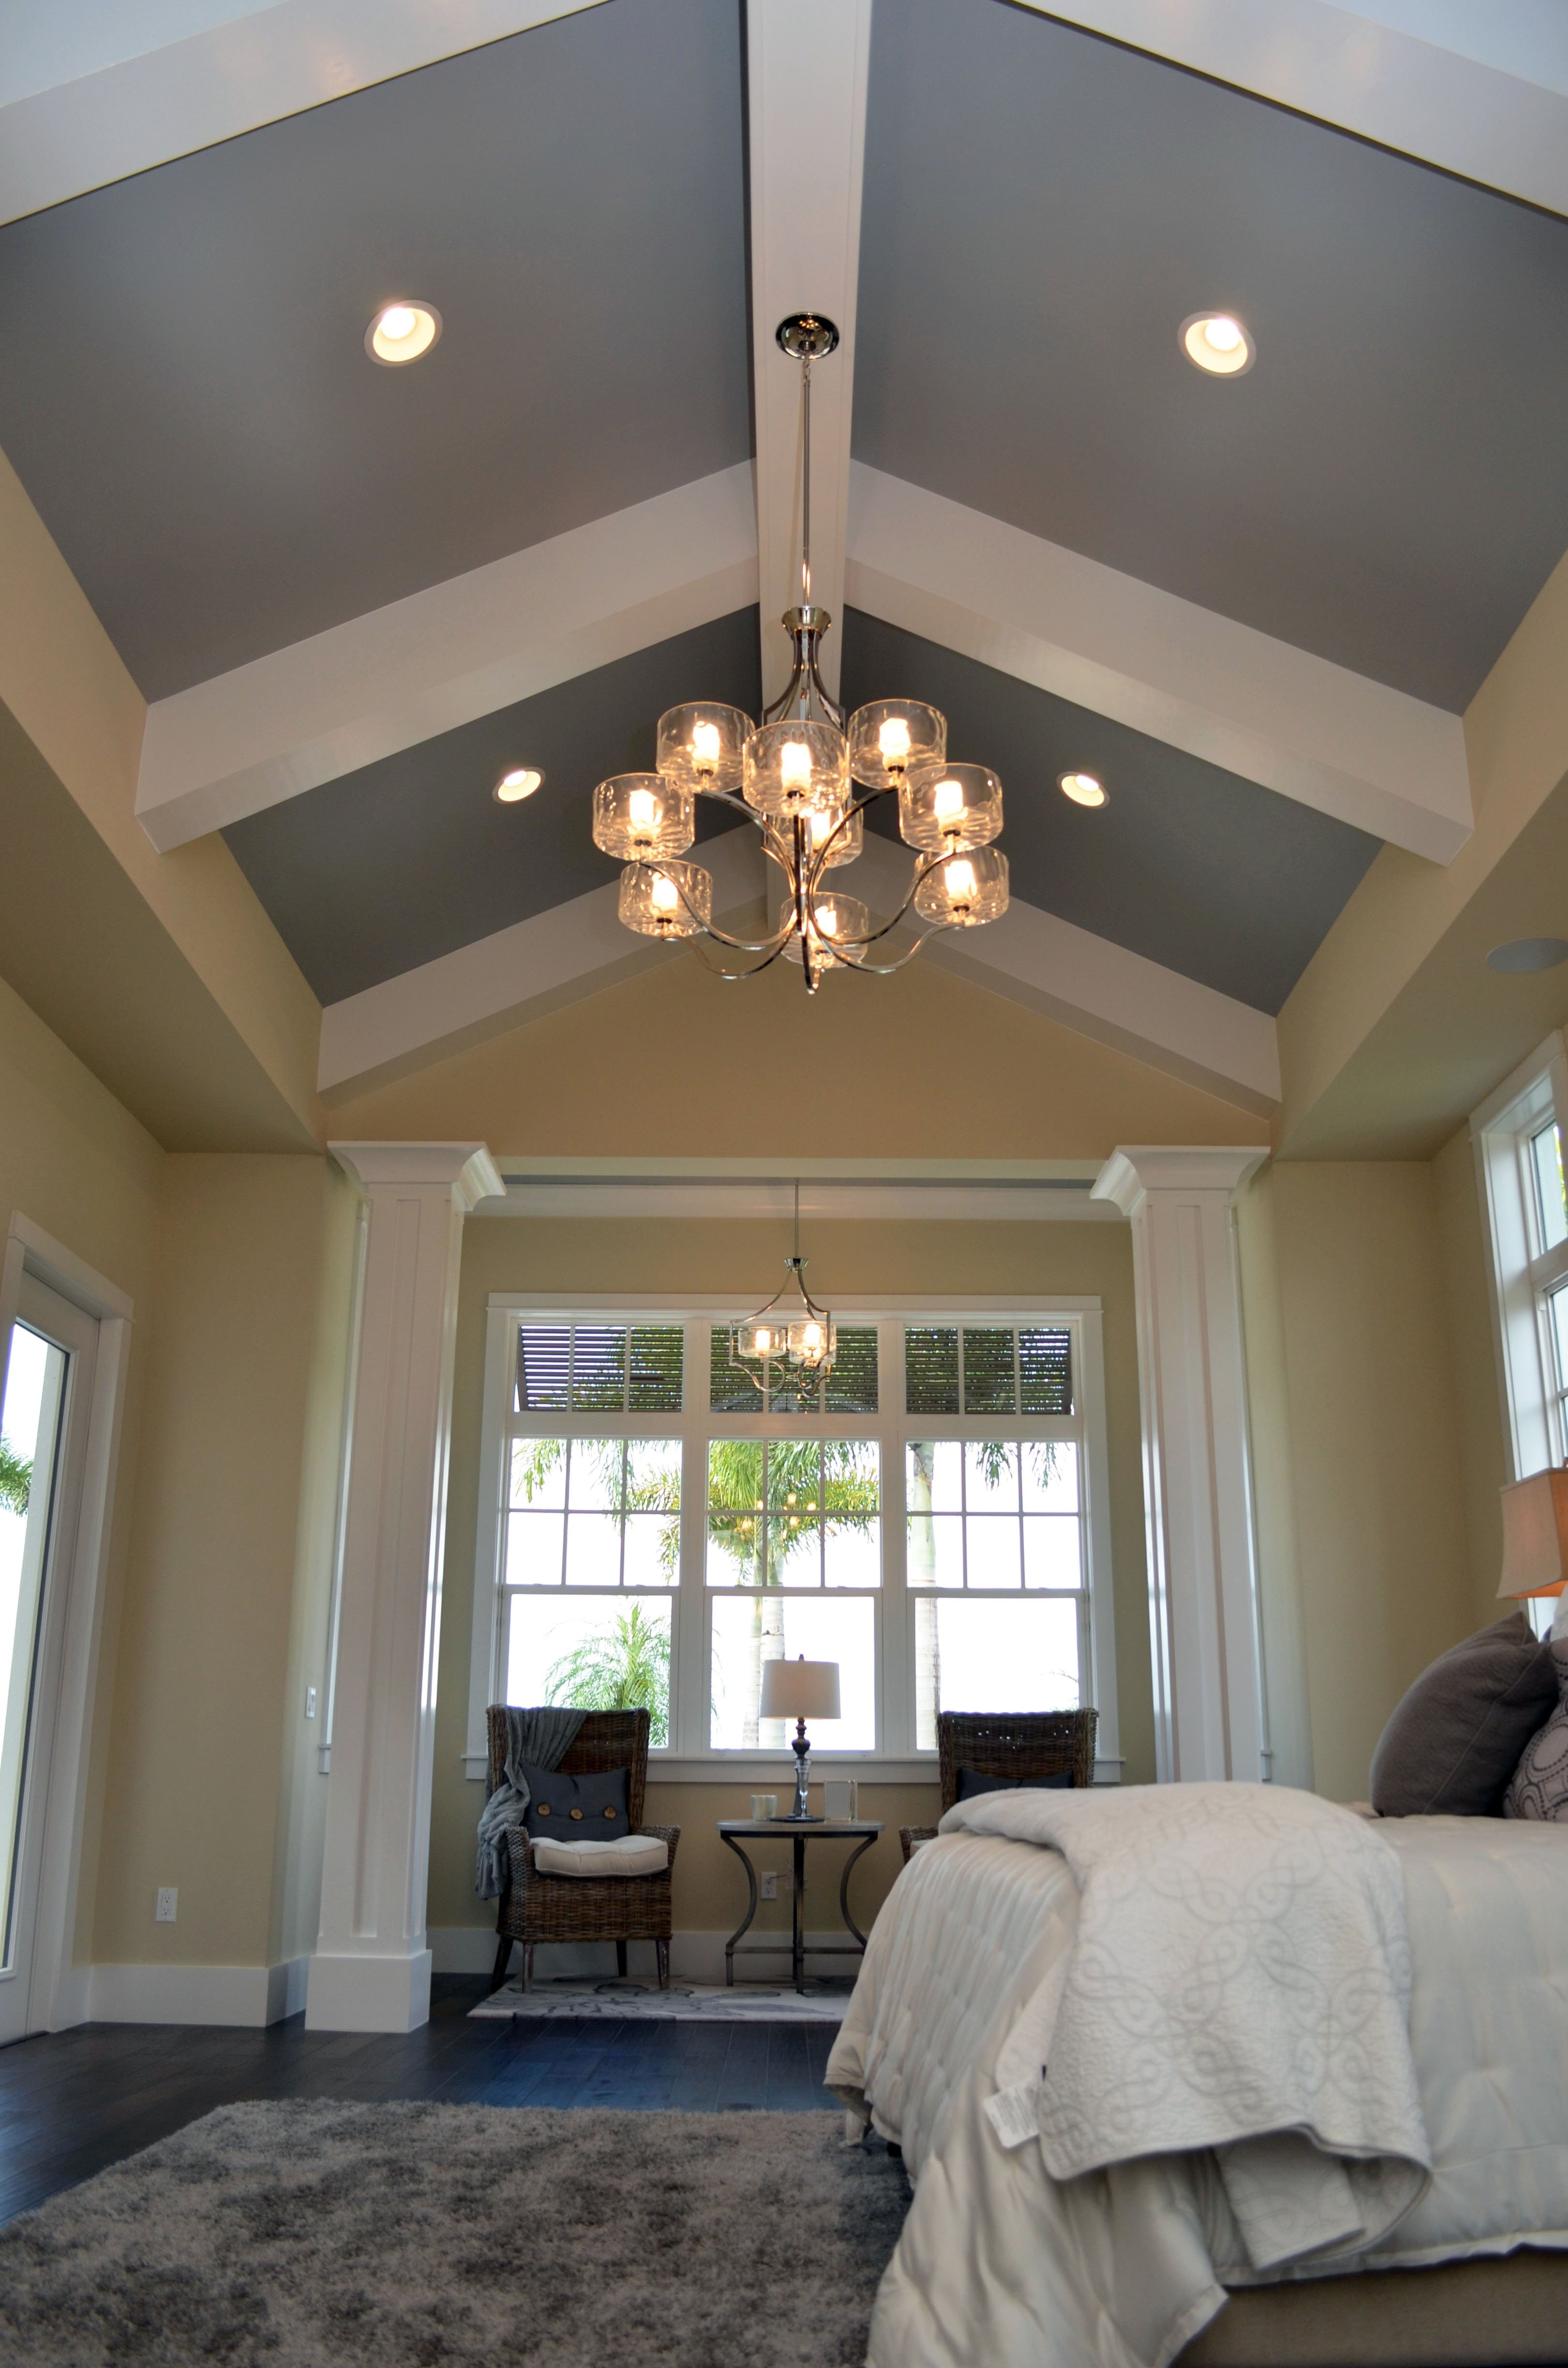 10 Trendy Lighting Ideas For Vaulted Ceilings home lighting vaulted ceiling lighting vaulted ceiling kitchen 2020